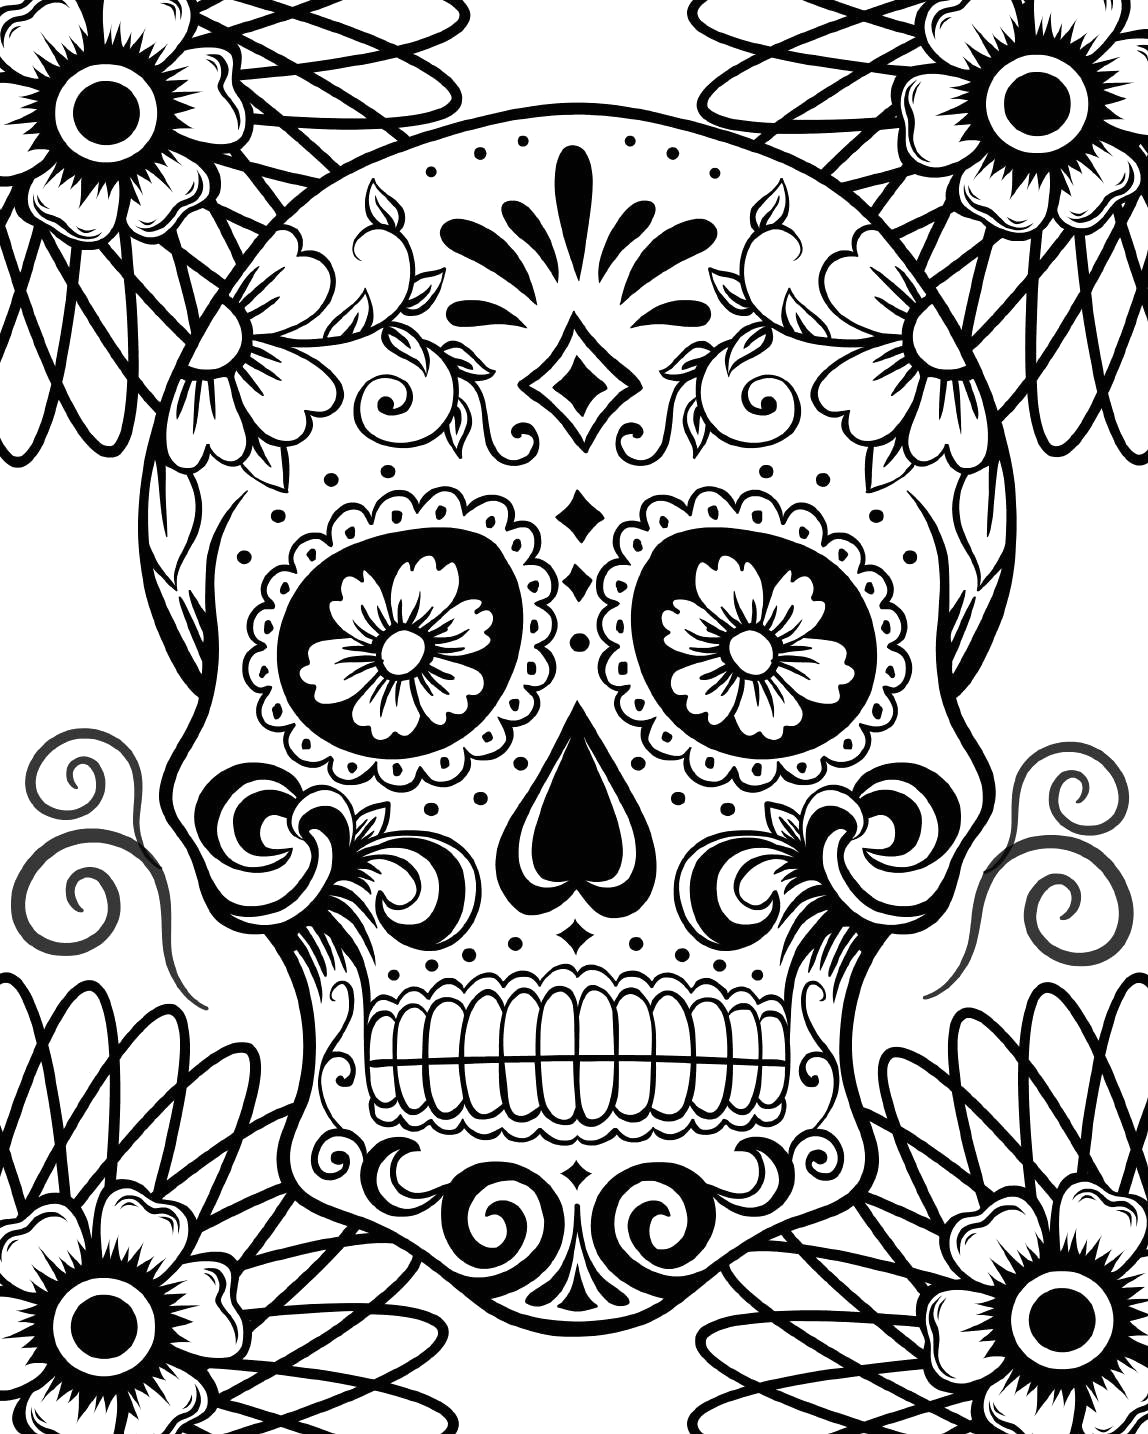 Free Day Of the Dead Skull Coloring Pages Free Printable Day Of the Dead Coloring Pages Best